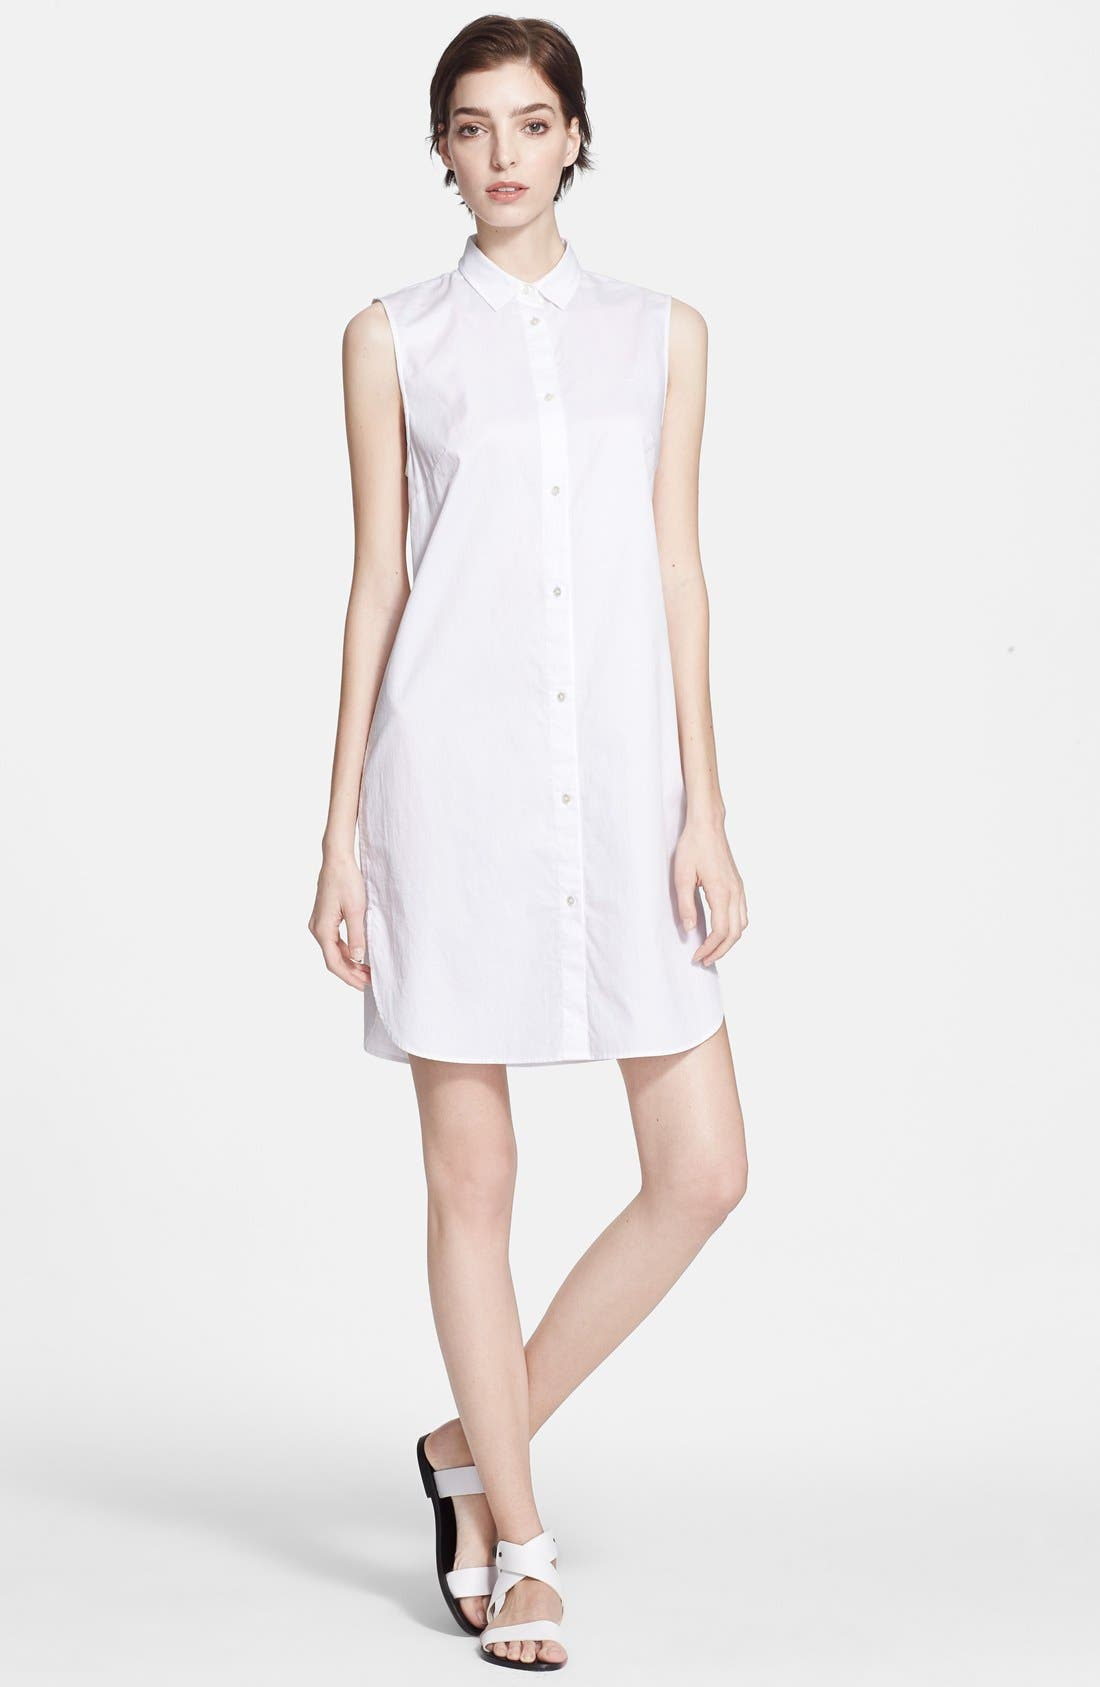 Alternate Image 1 Selected - T by Alexander Wang Cotton Poplin Shirtdress